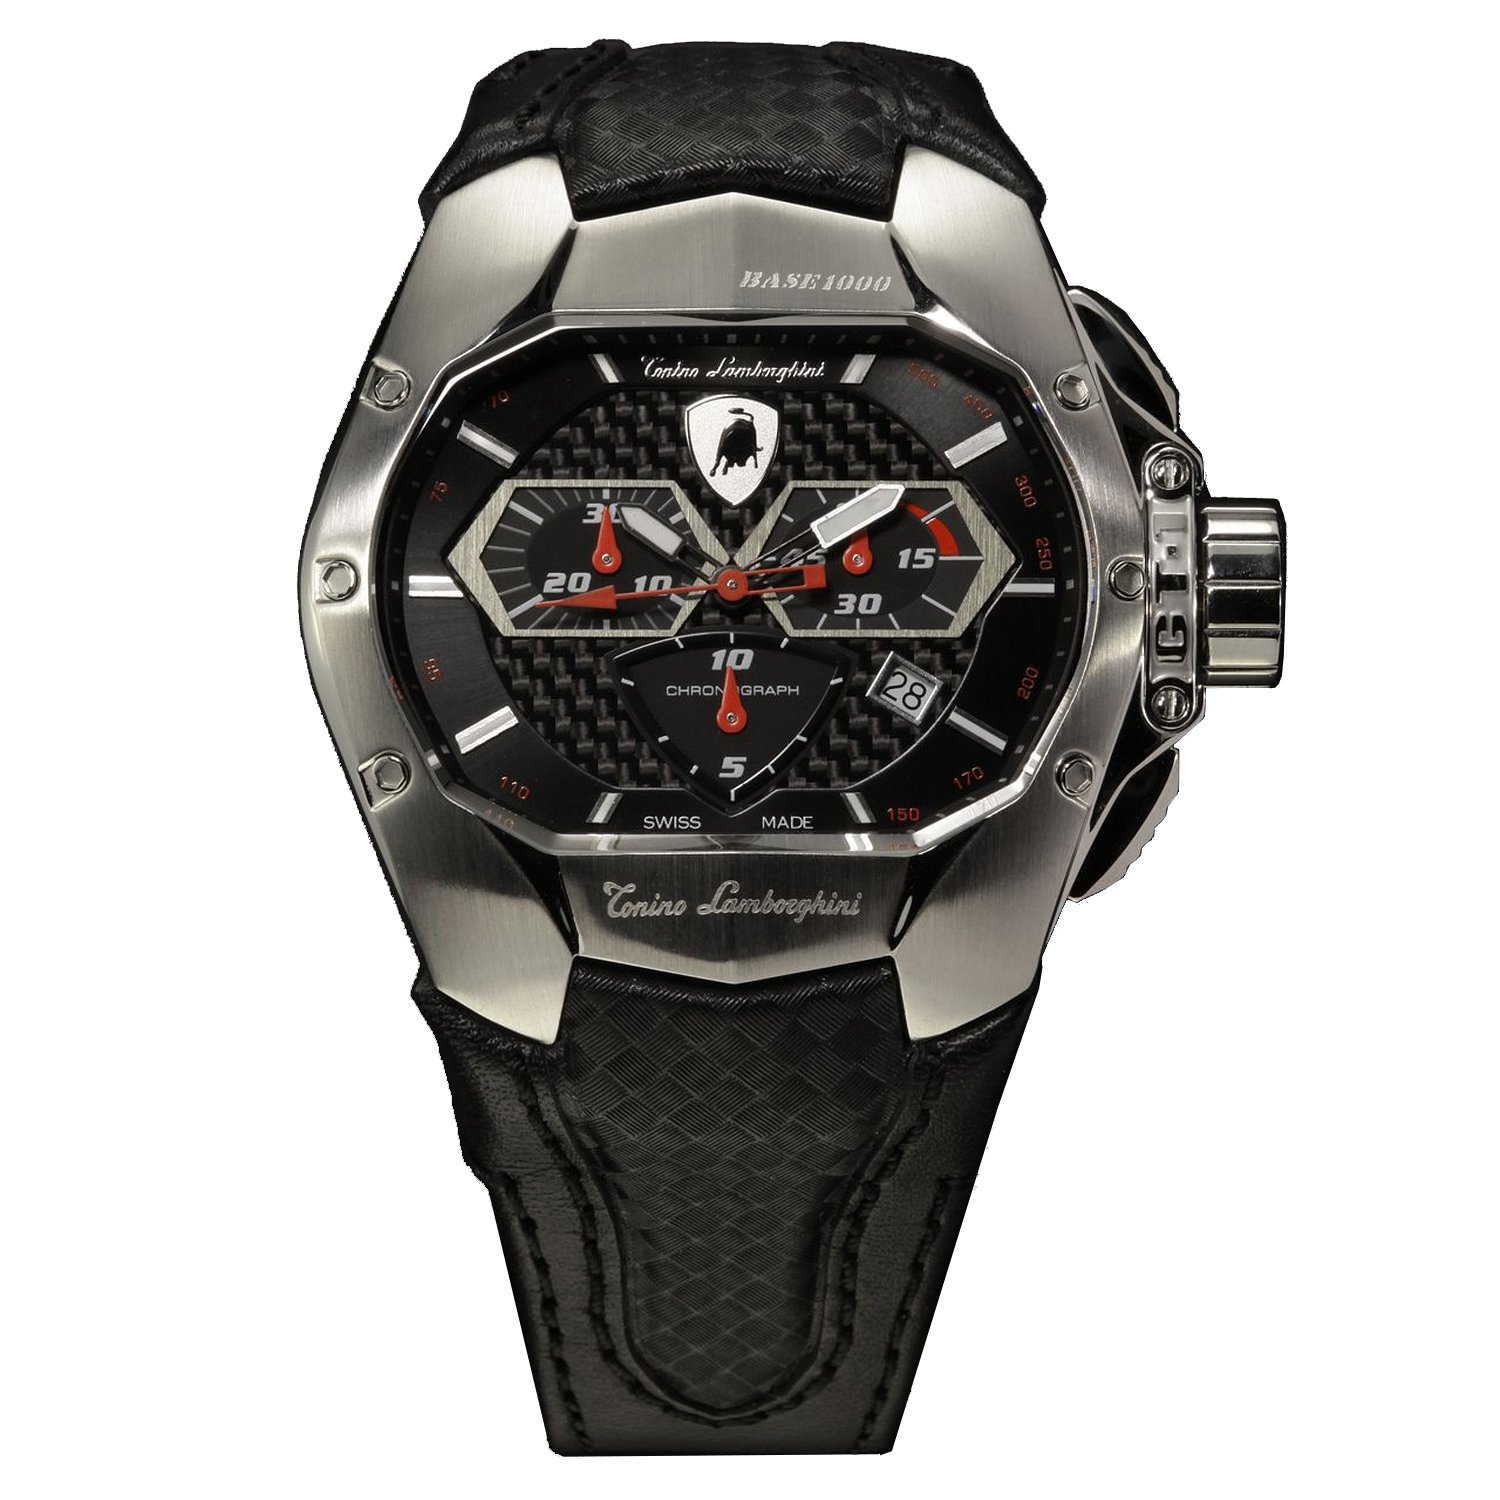 Tonino Lamborghini GT1 Chronograph 800S Watch